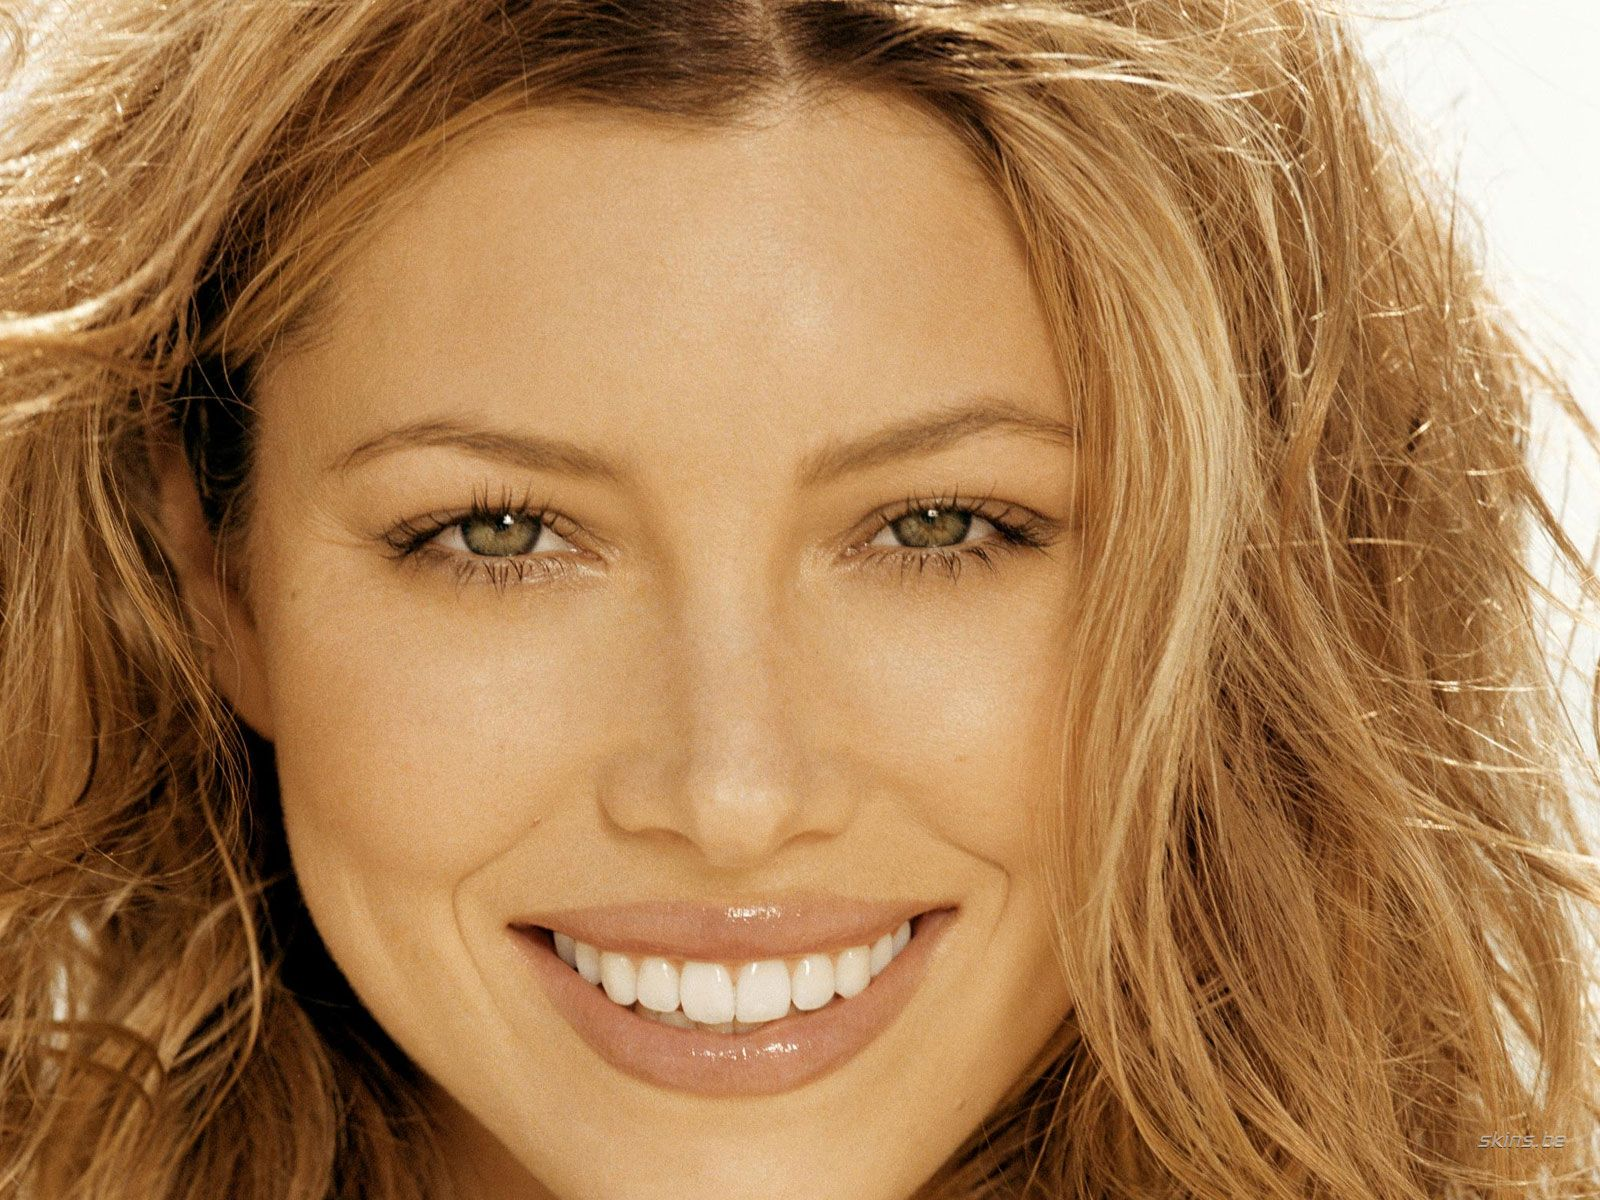 Foyer Colors Justin Timberlake : Latin women in movies with big smile great hd wallpaper